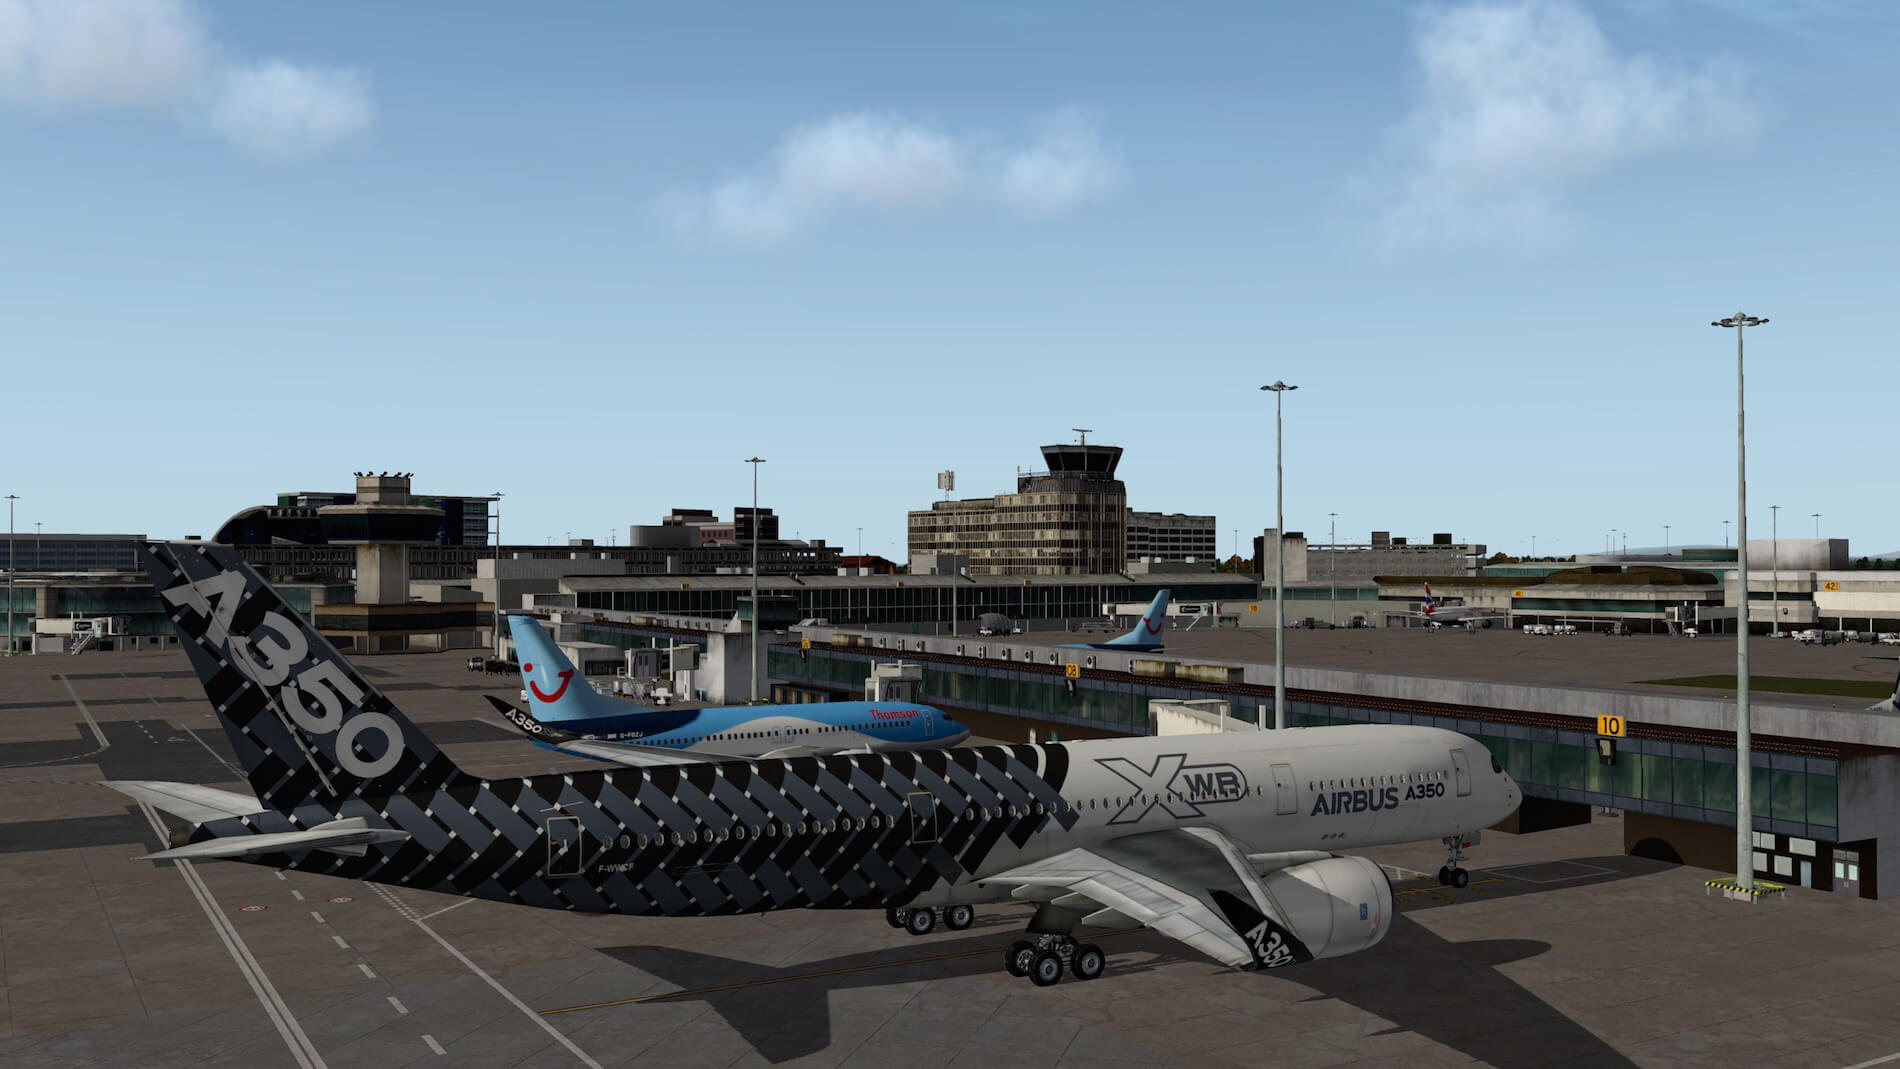 Icarus-Manchester-Airport-16